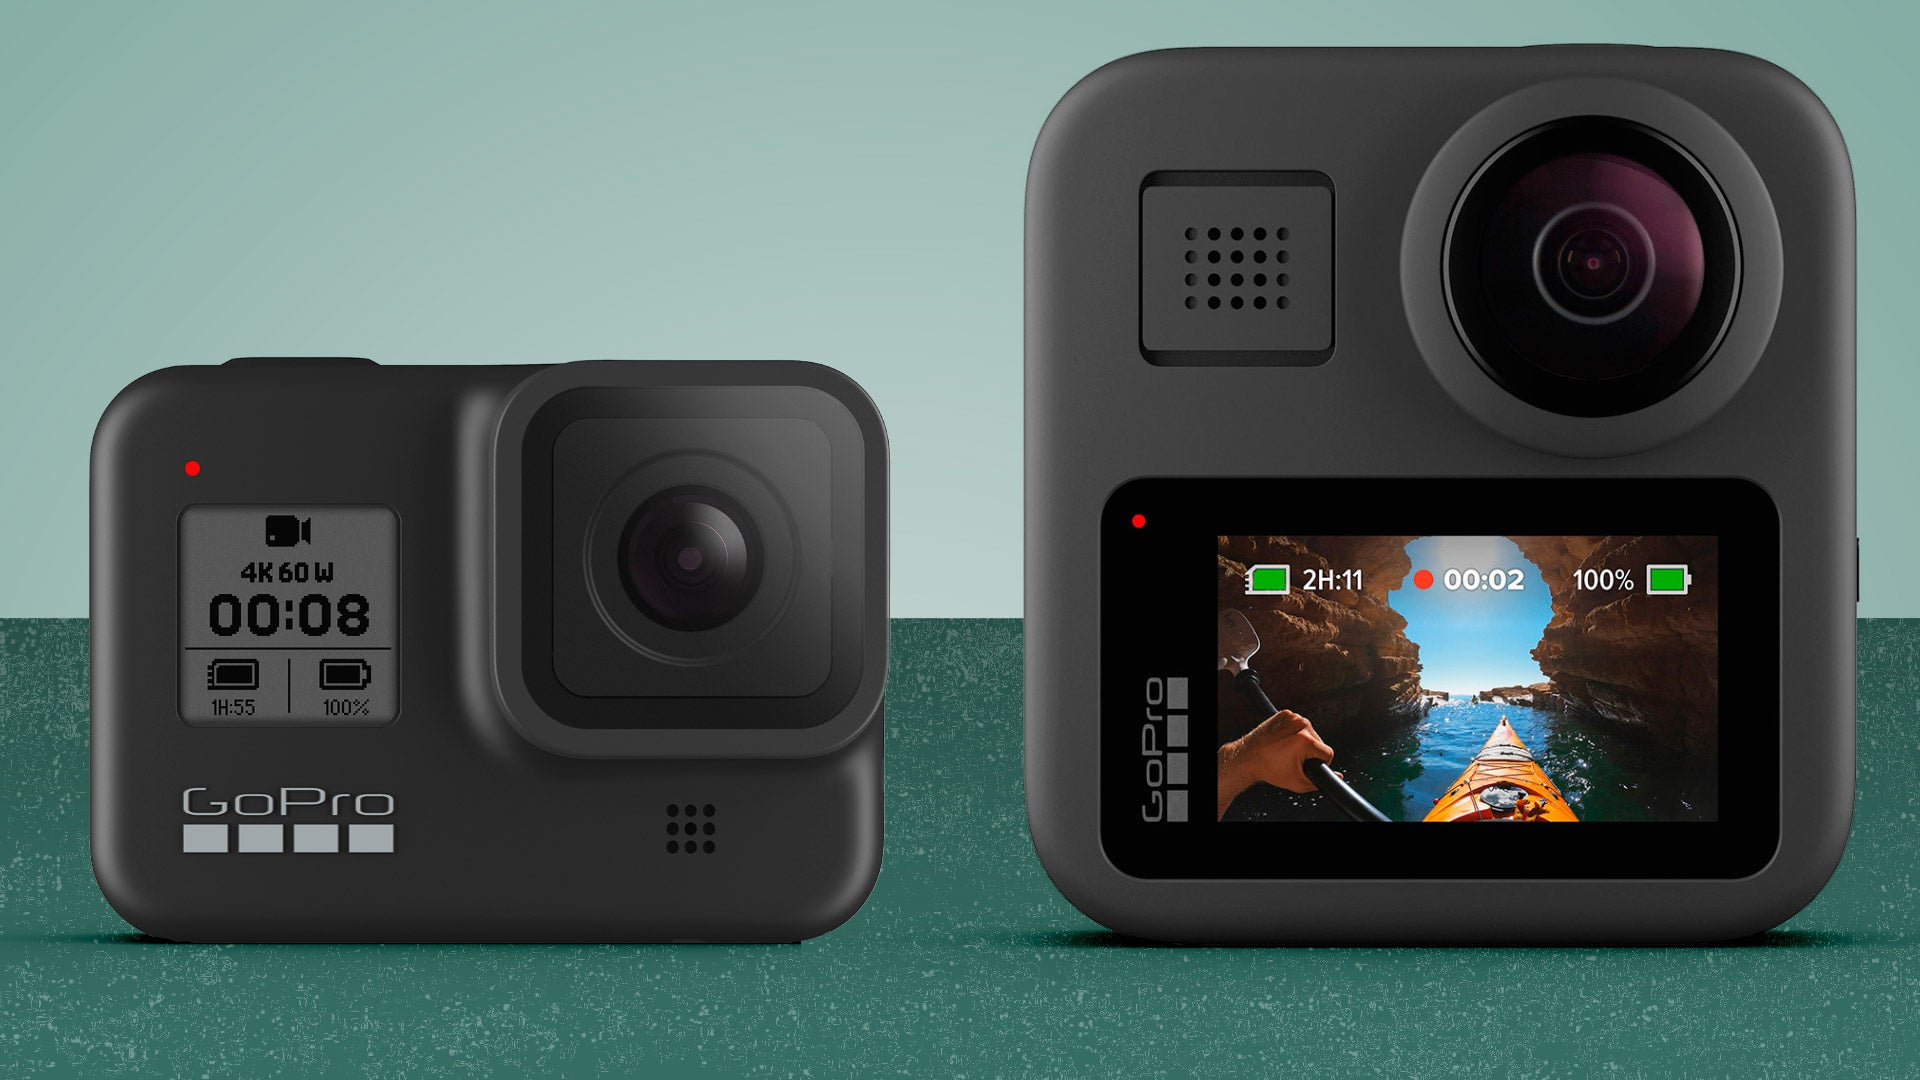 GoPro Hero 8 Black vs GoPro Max